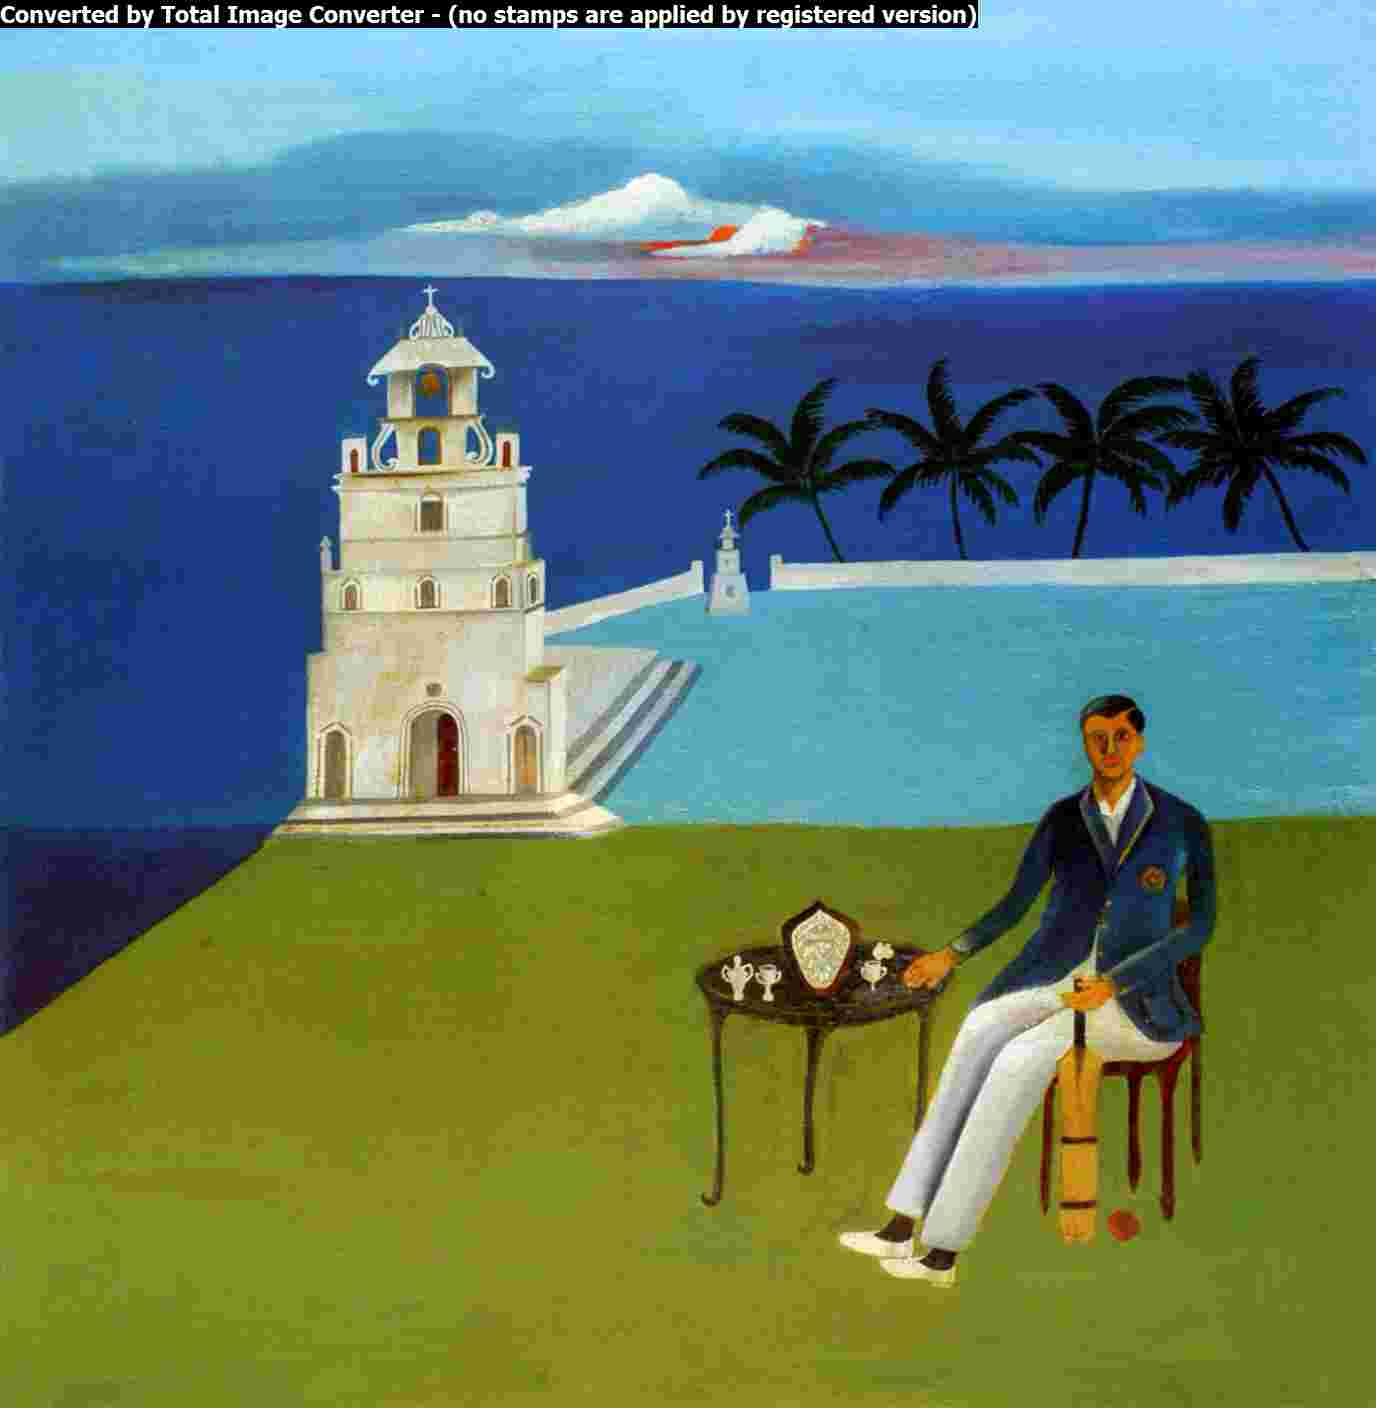 Reproduction Bhupen Khakhar